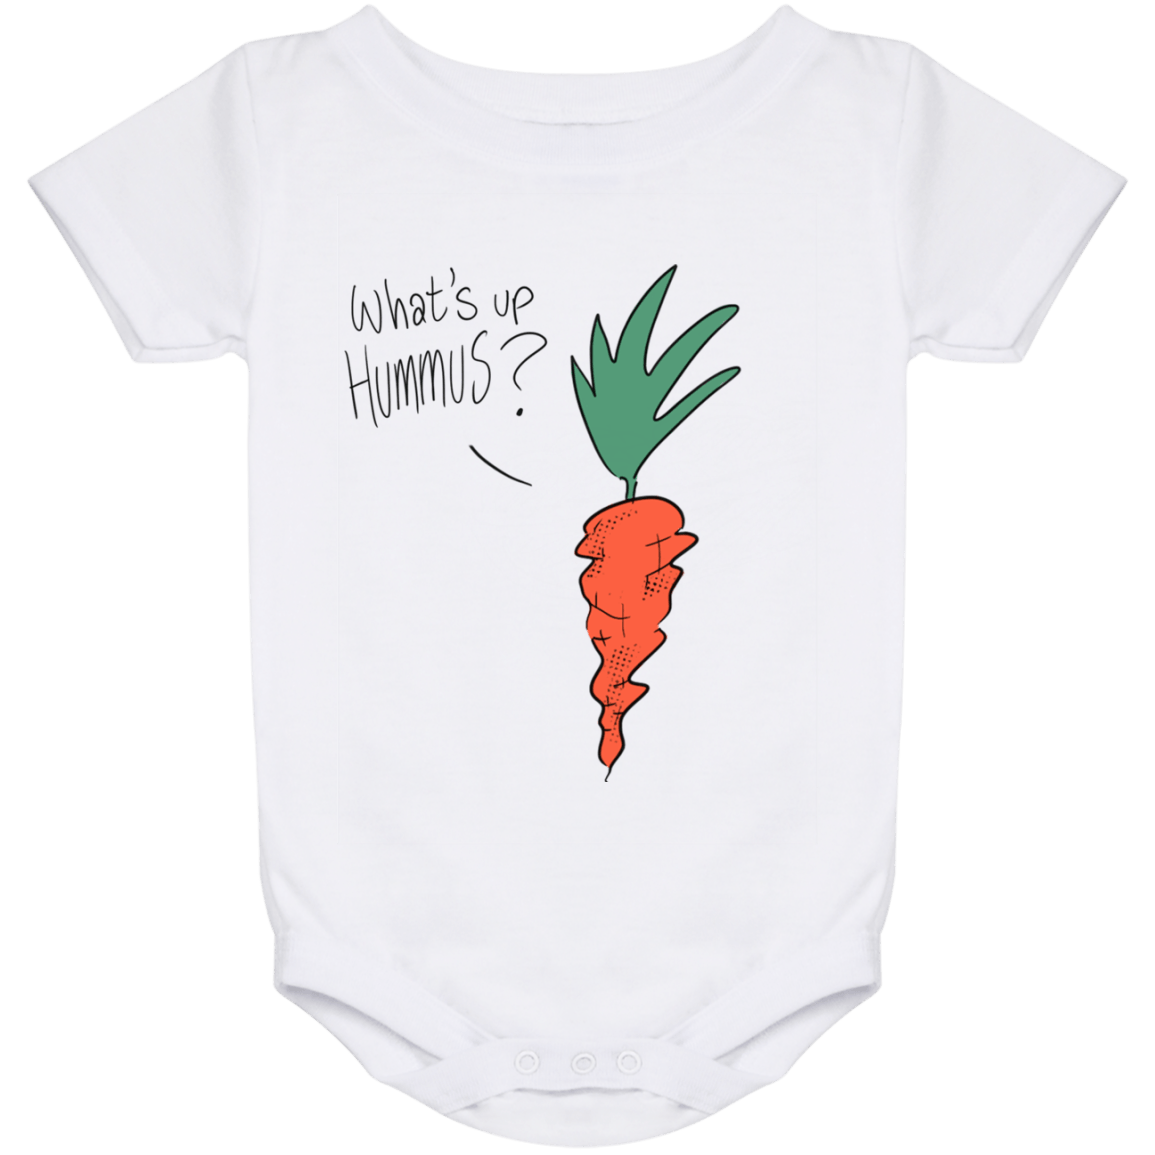 What's up Hummus? Baby Onesie 24 Month